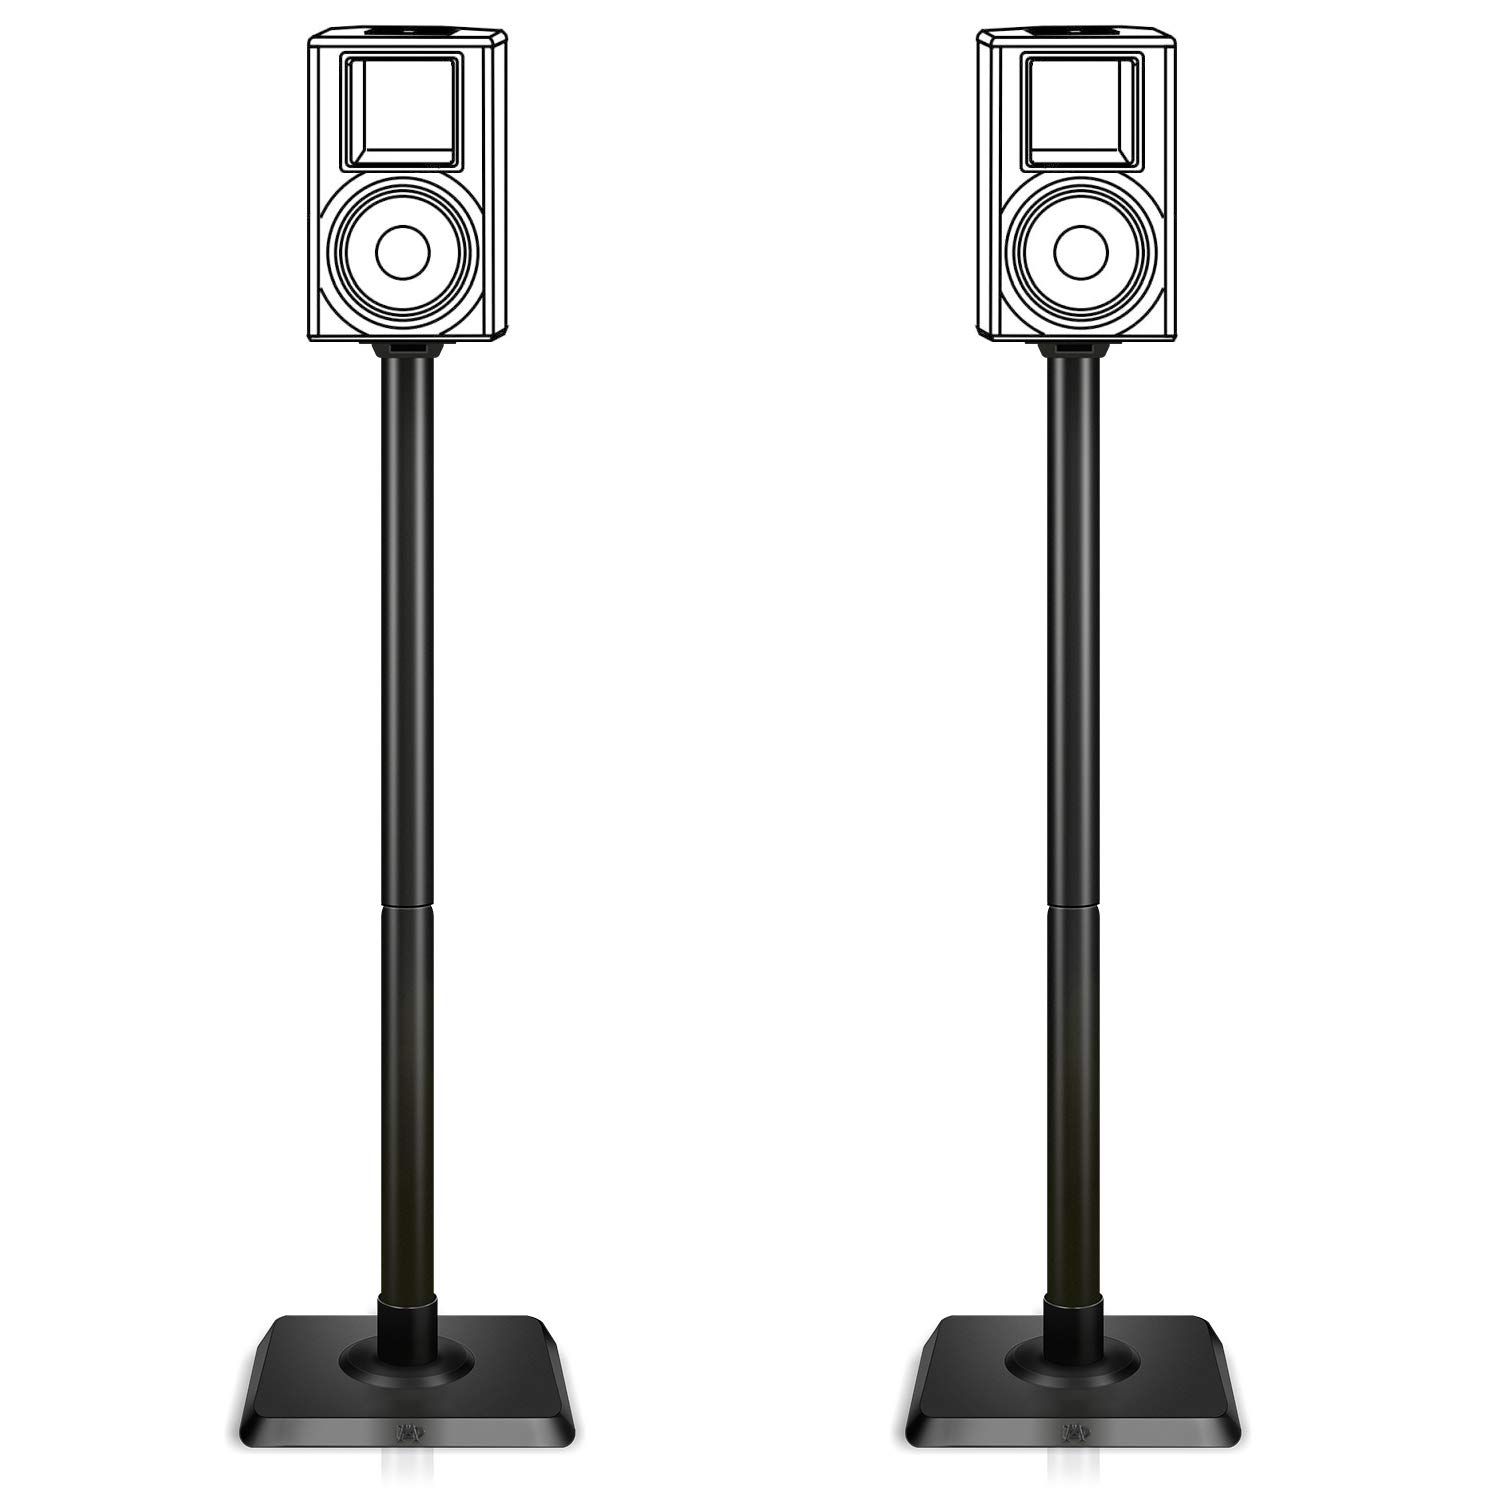 Mounting Dream Speaker Stand Pair for Home Theater Surround Sound Satellite Speakers, Set of 2 Floor Stand Mounts Built-in Cable Management Universal compatibility with 11LBS Capacity Per Stand MD5402 by Mounting Dream